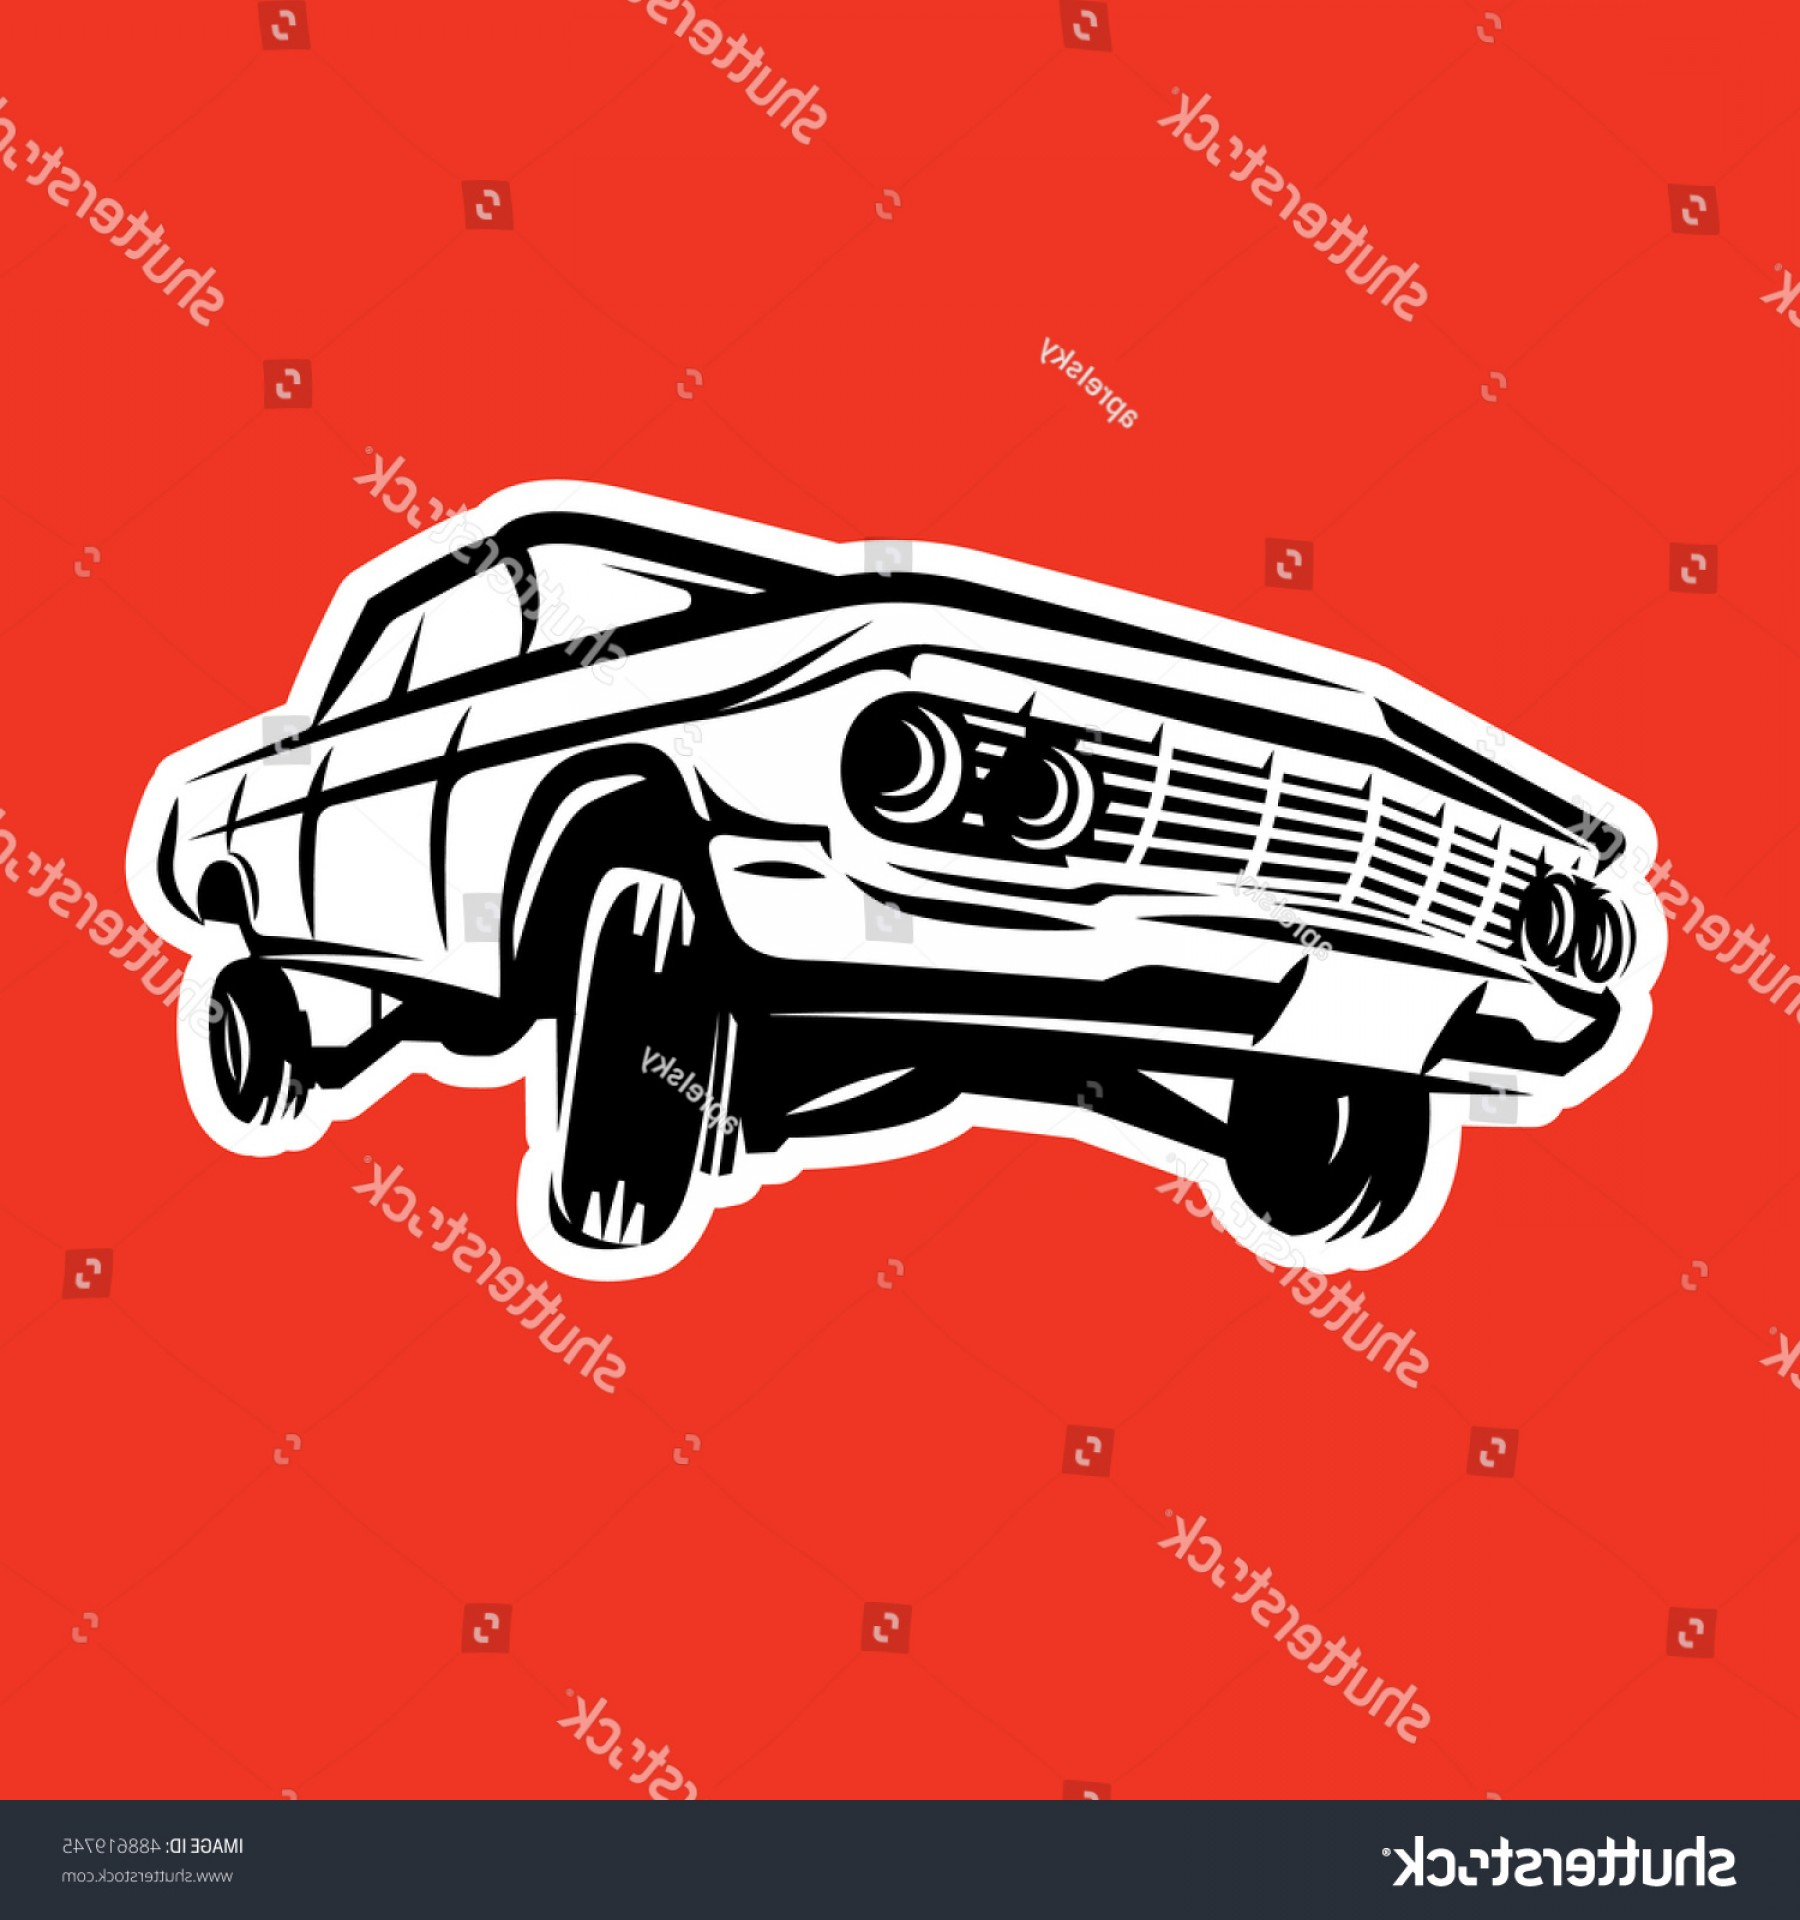 Lowrider Vector: Old American Lowrider Car Vector Illusration